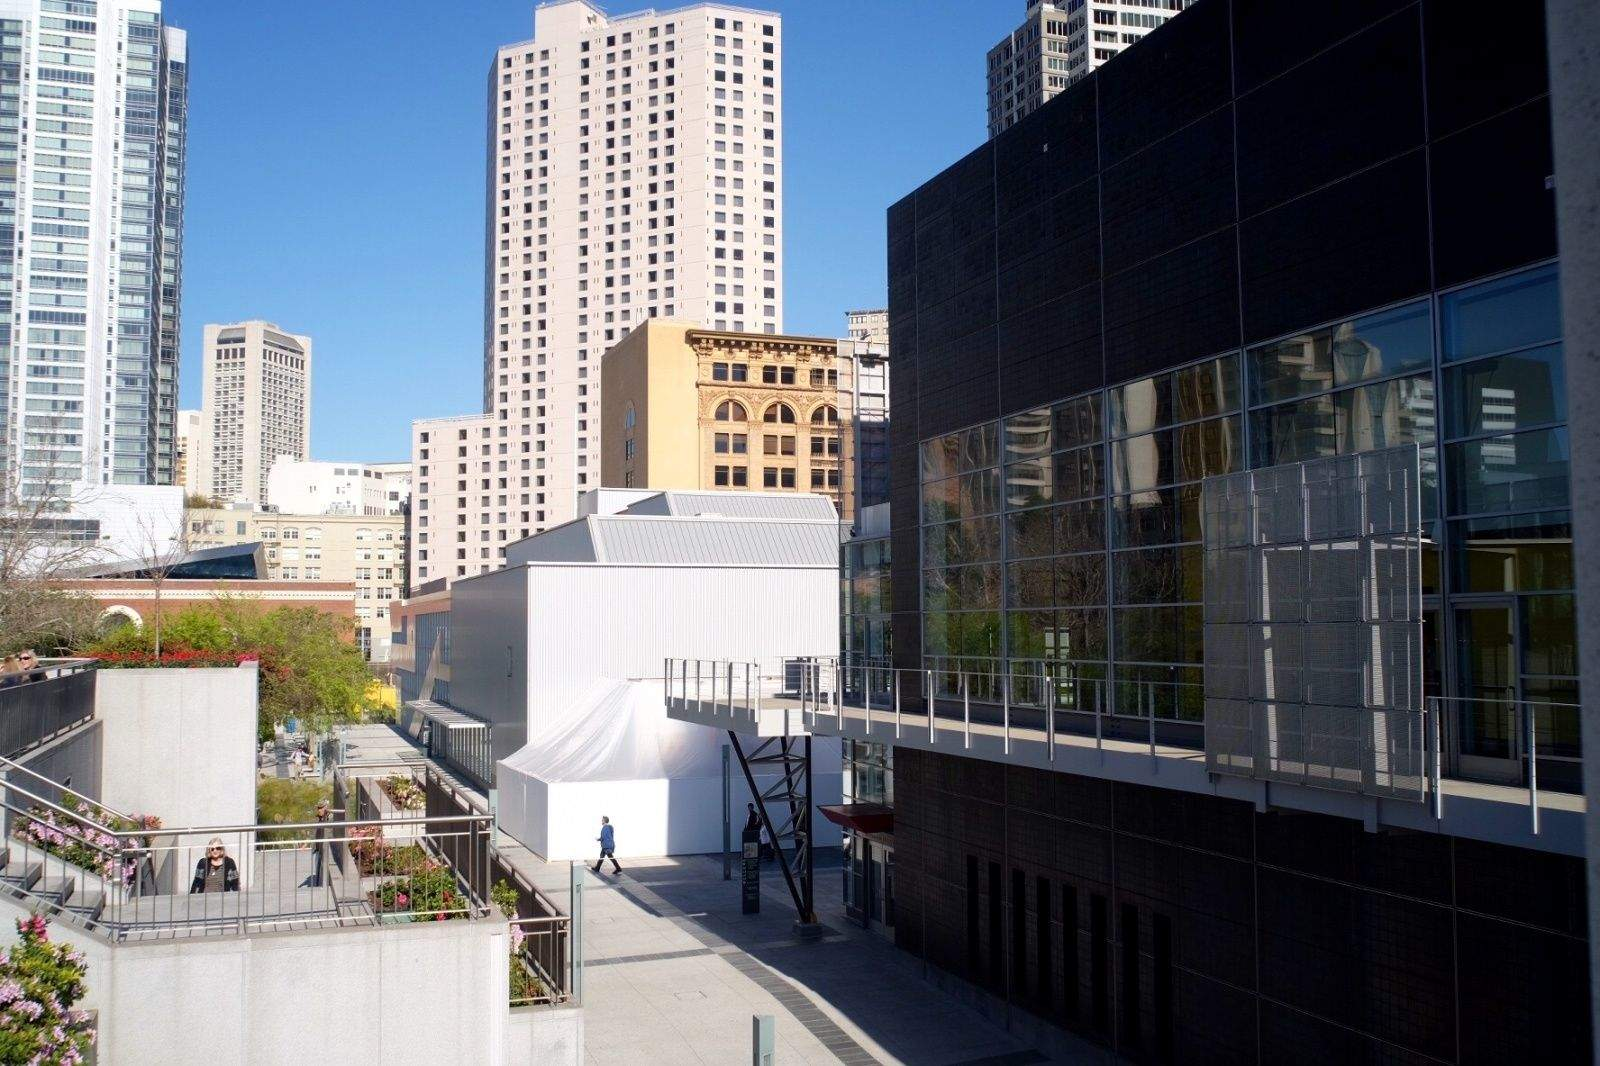 Apple's tiny white tent nestles between buildings at San Francisco's Yerba Buena Center for the Arts. Photo: Jim Merithew/ Cult of Mac